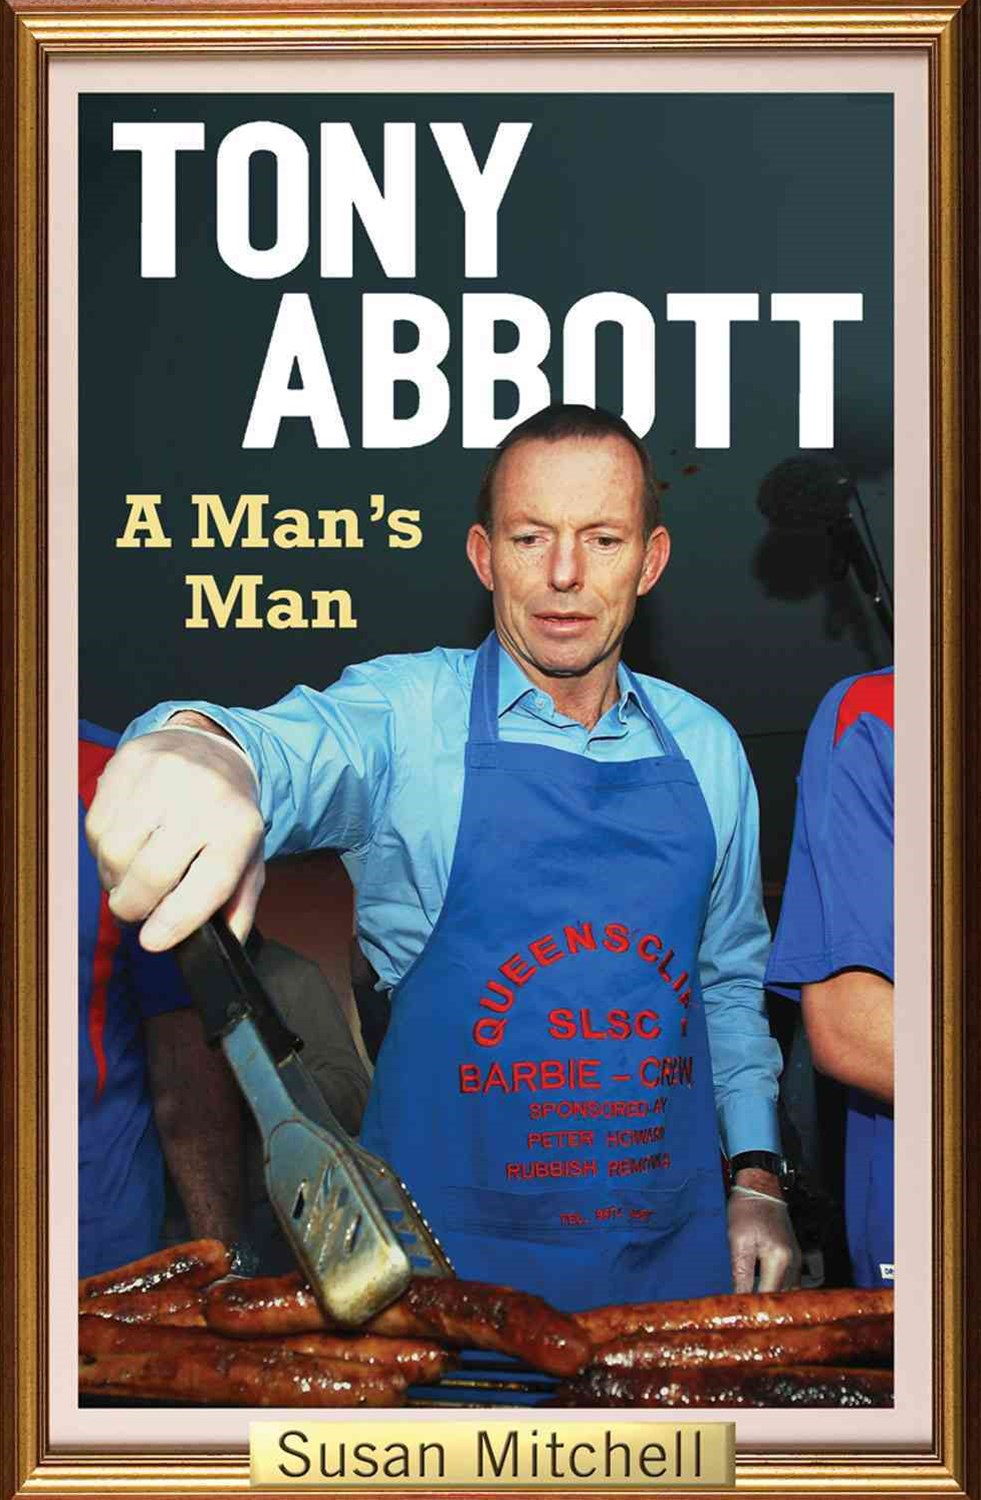 Tony Abbott: A Man's Man